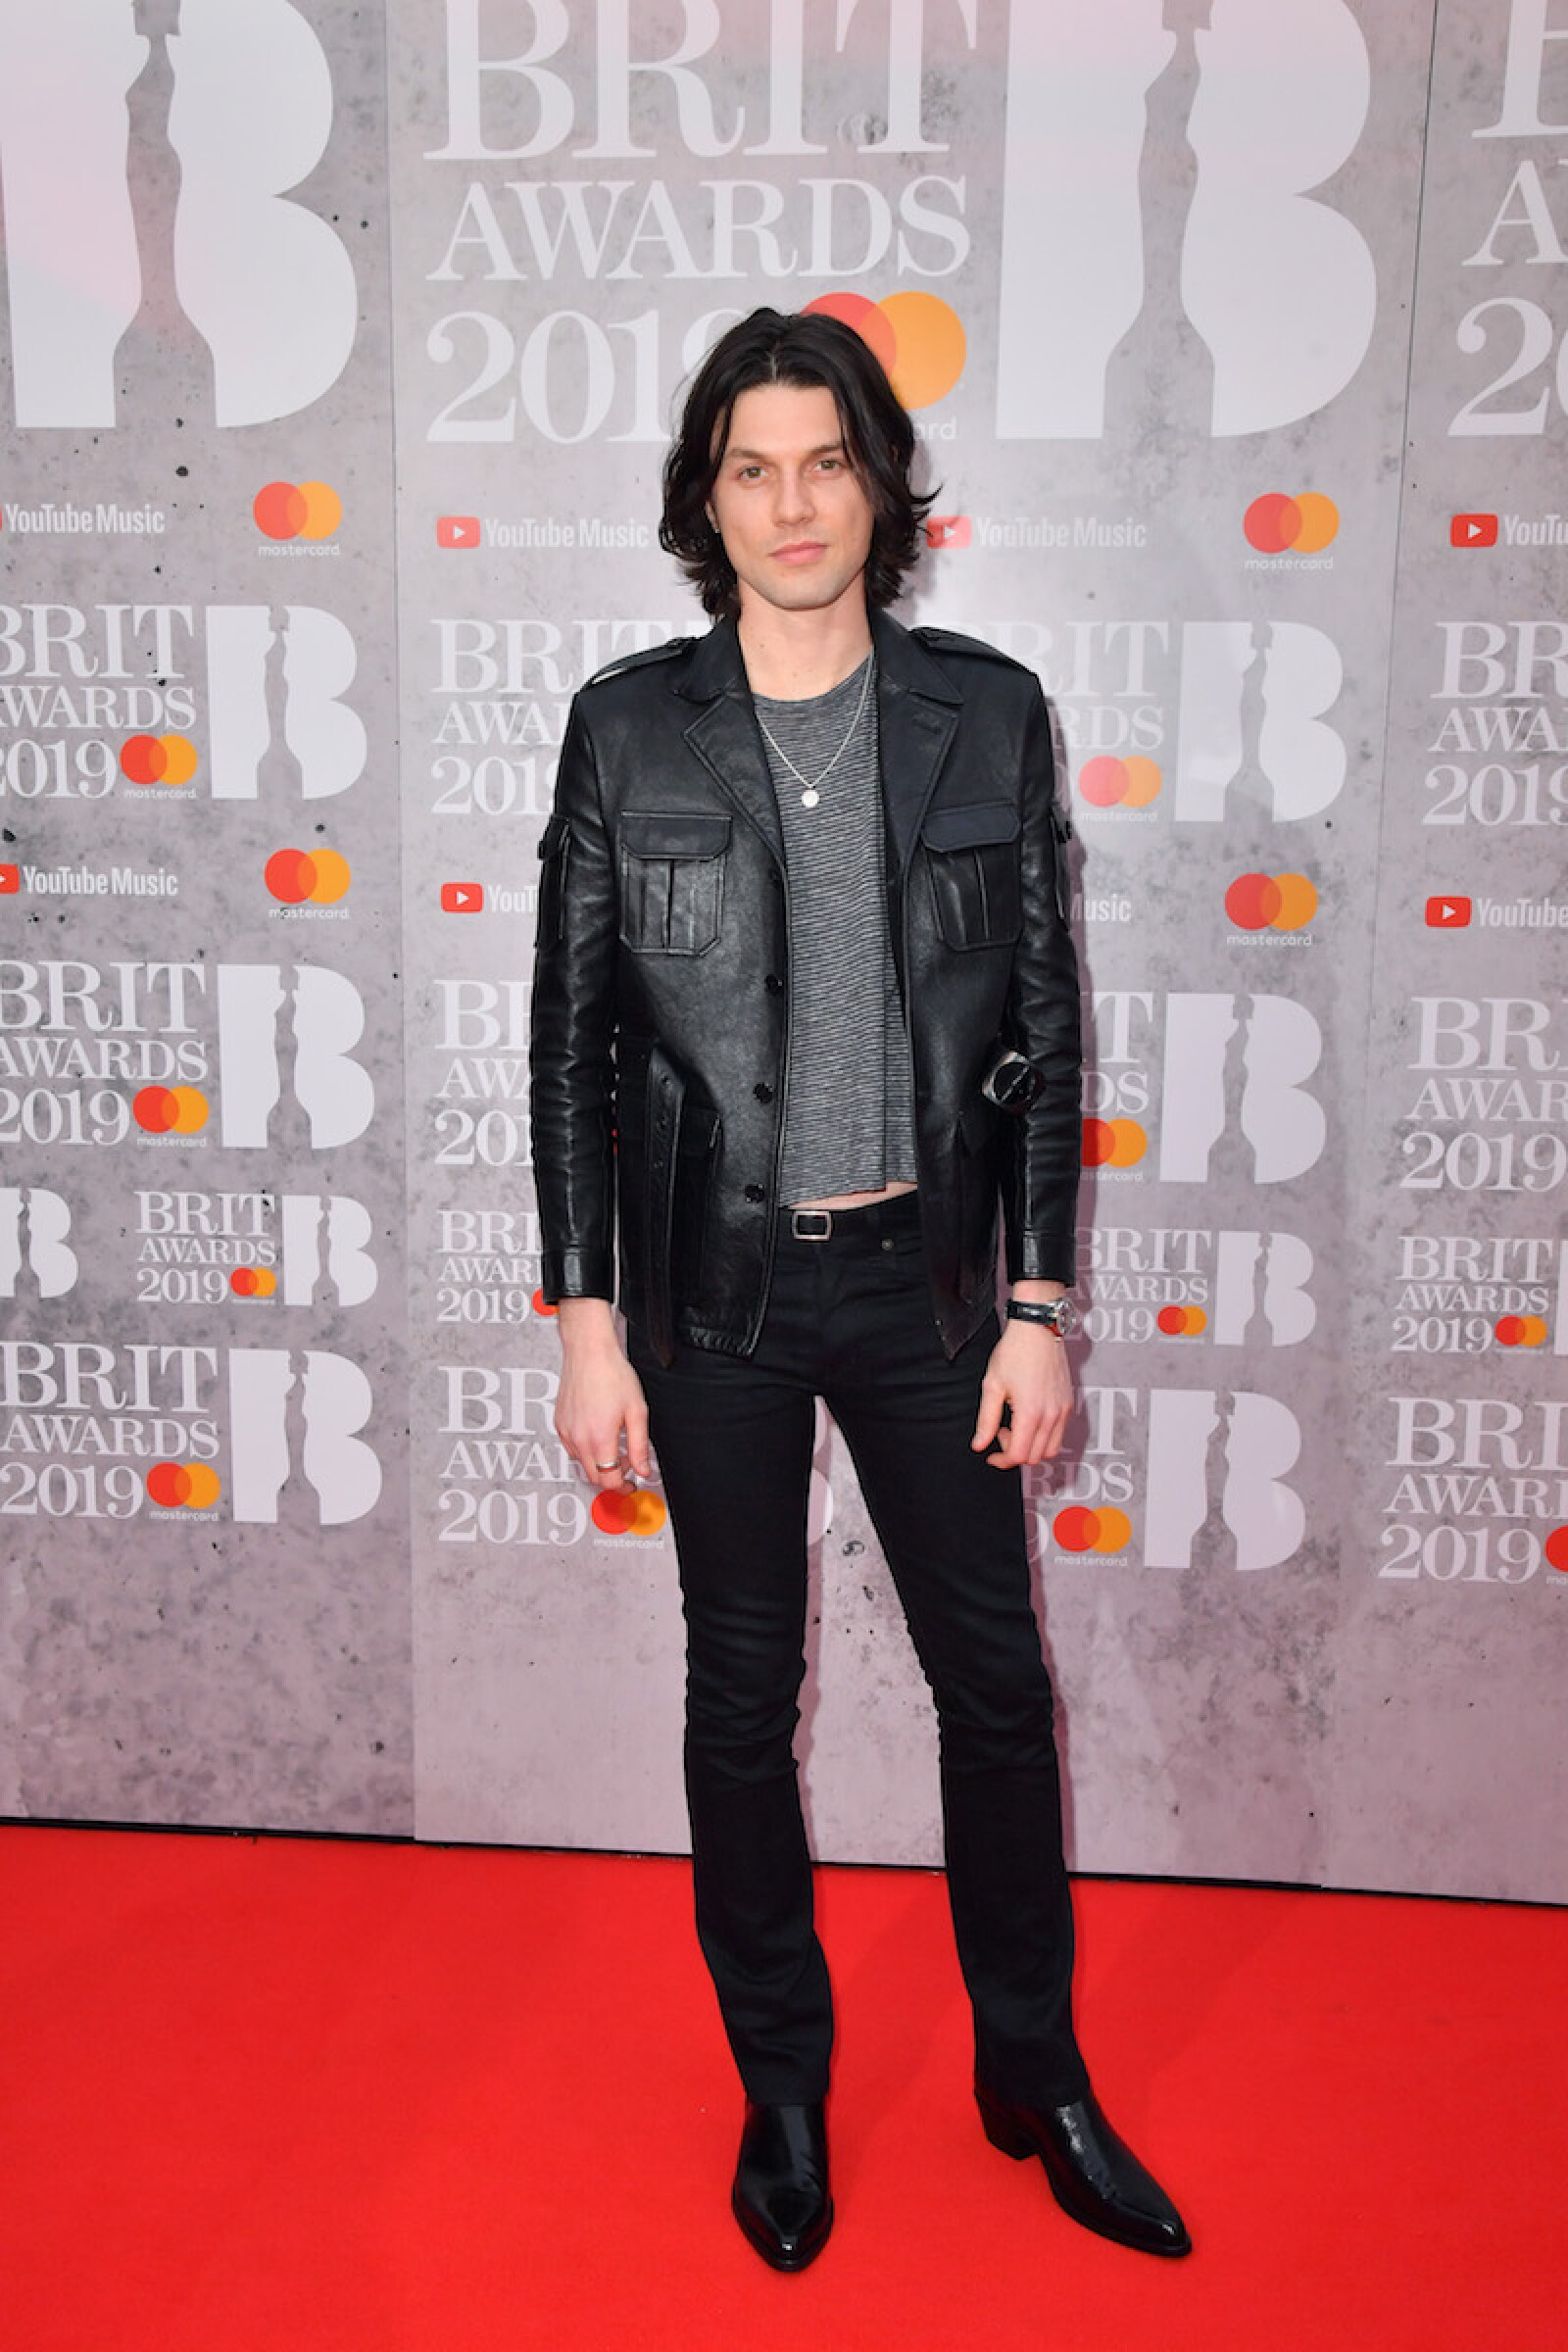 39th Brit Awards, Arrivals, The O2 Arena, London, UK - 20 Feb 2019